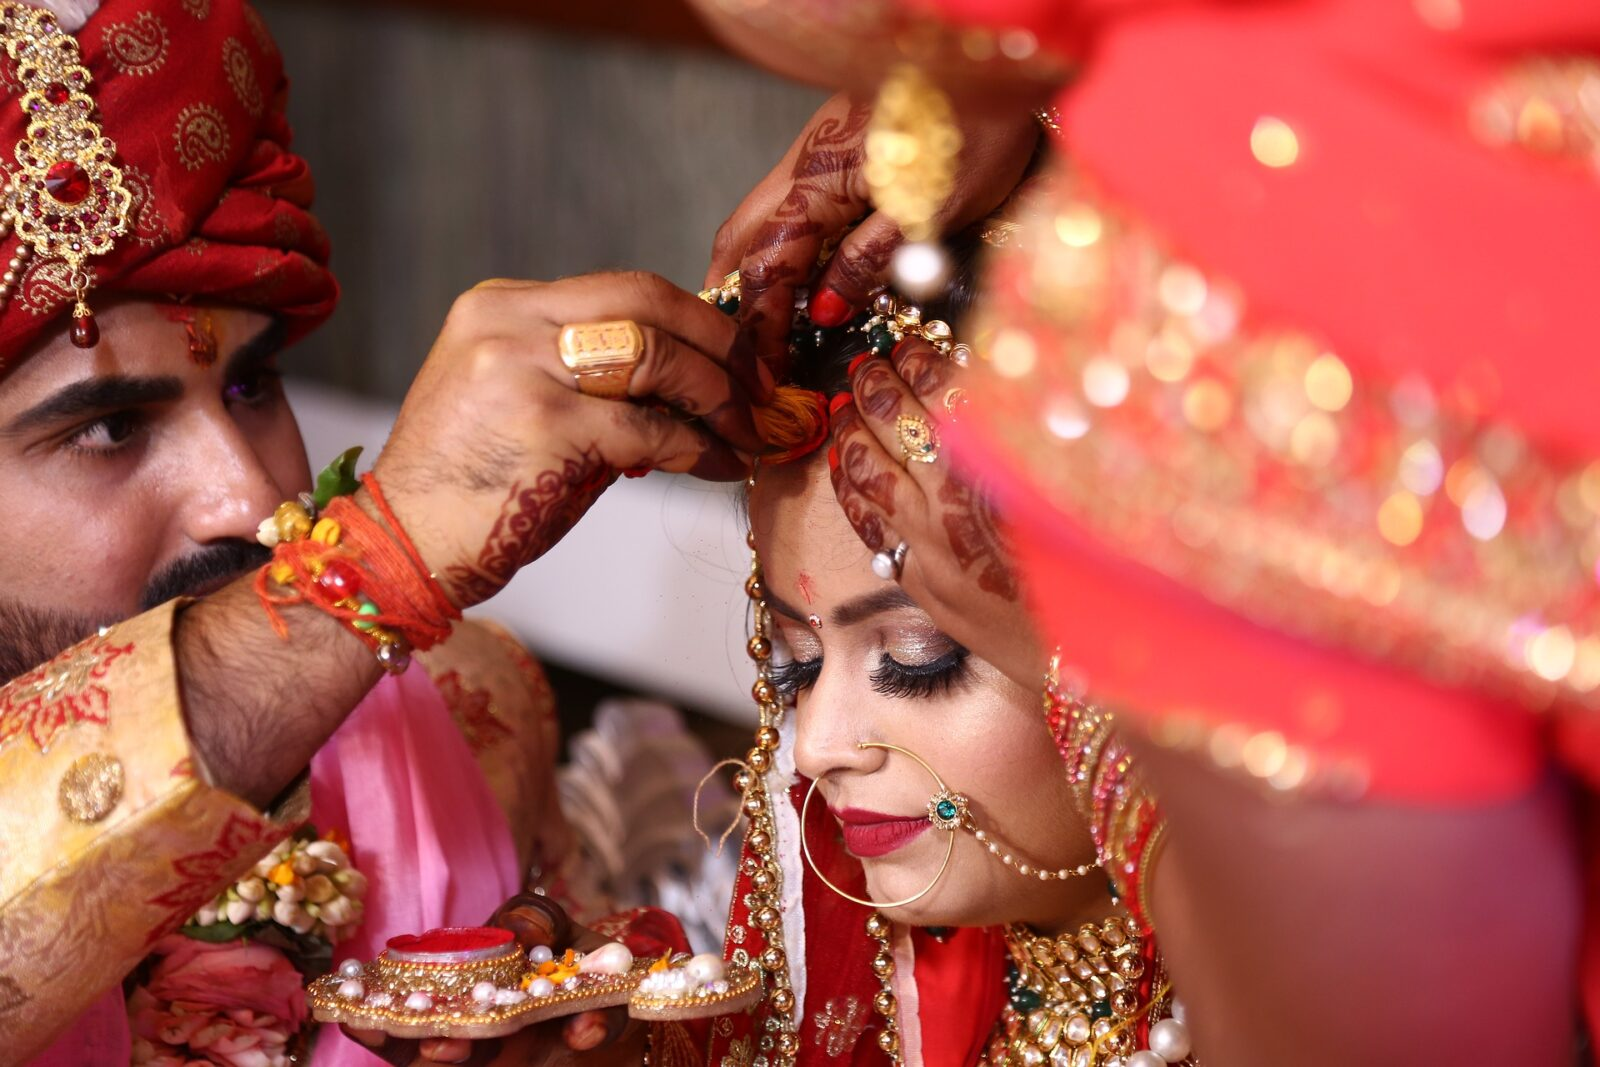 man-putting-sindoor-marriages-in-india-entertainments-saga